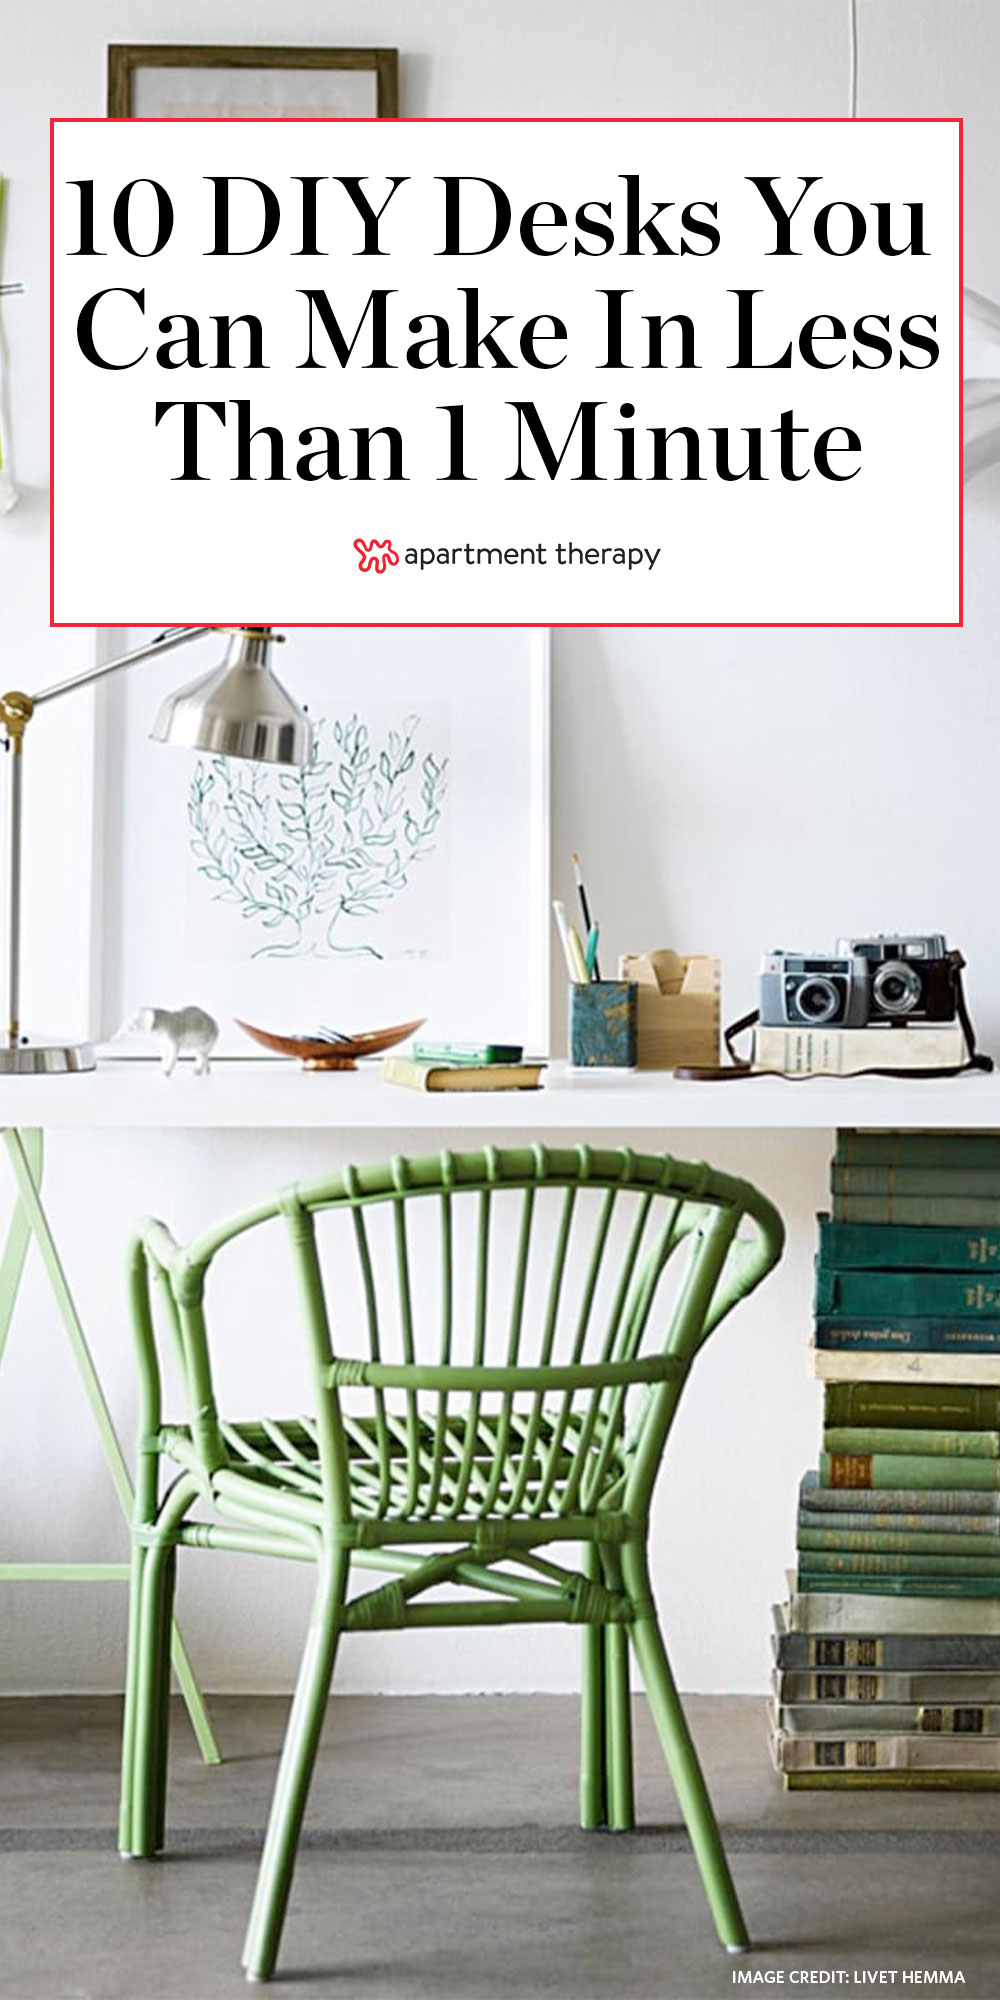 Image of: 15 Diy Desk Ideas Easy Cheap Ways To Make A Desk Apartment Therapy